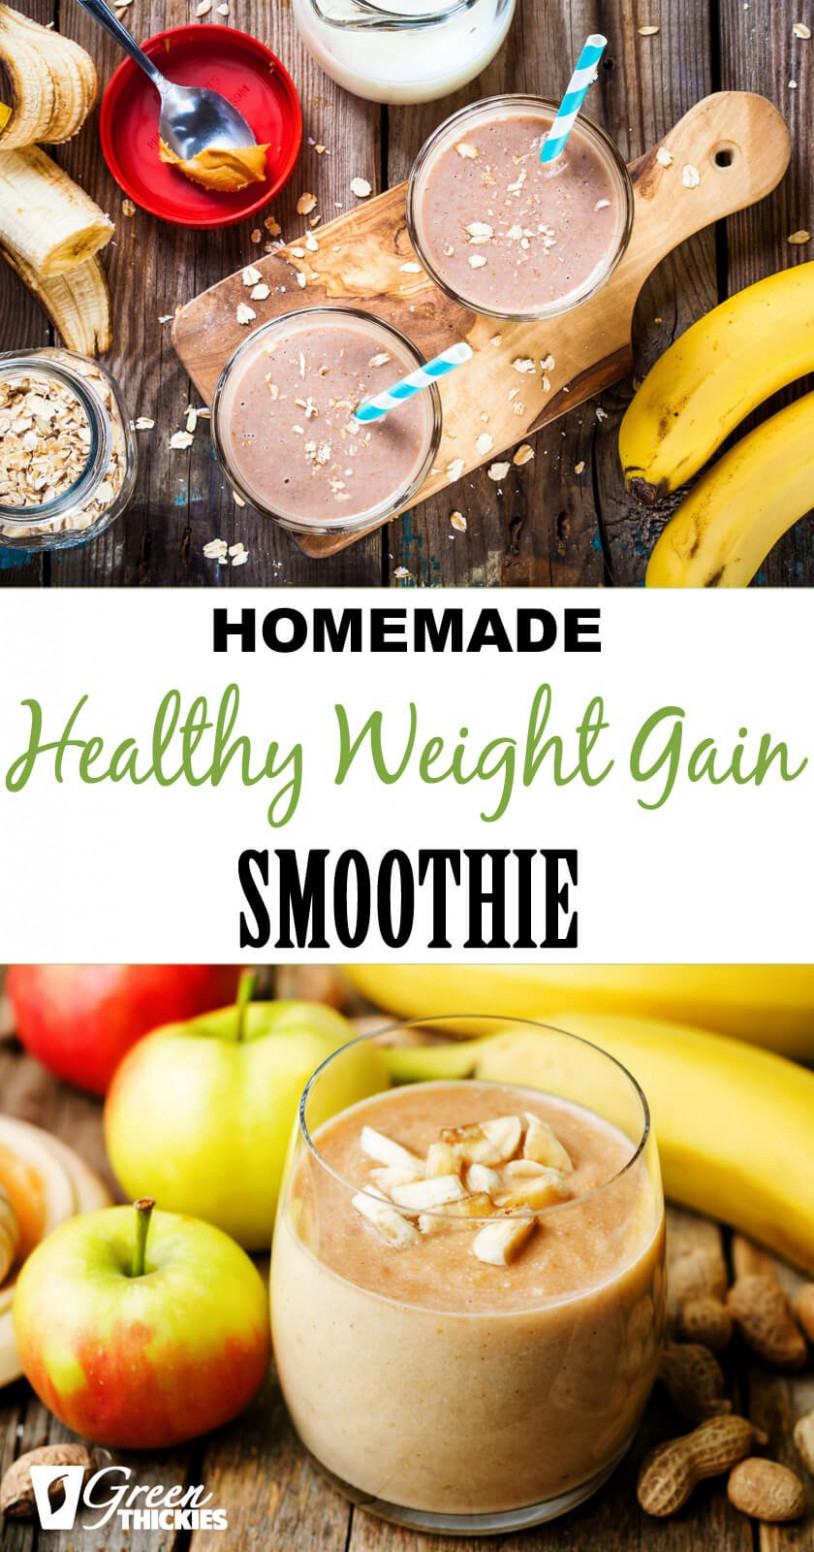 Homemade Healthy Weight Gain Smoothie - recipes to gain healthy weight